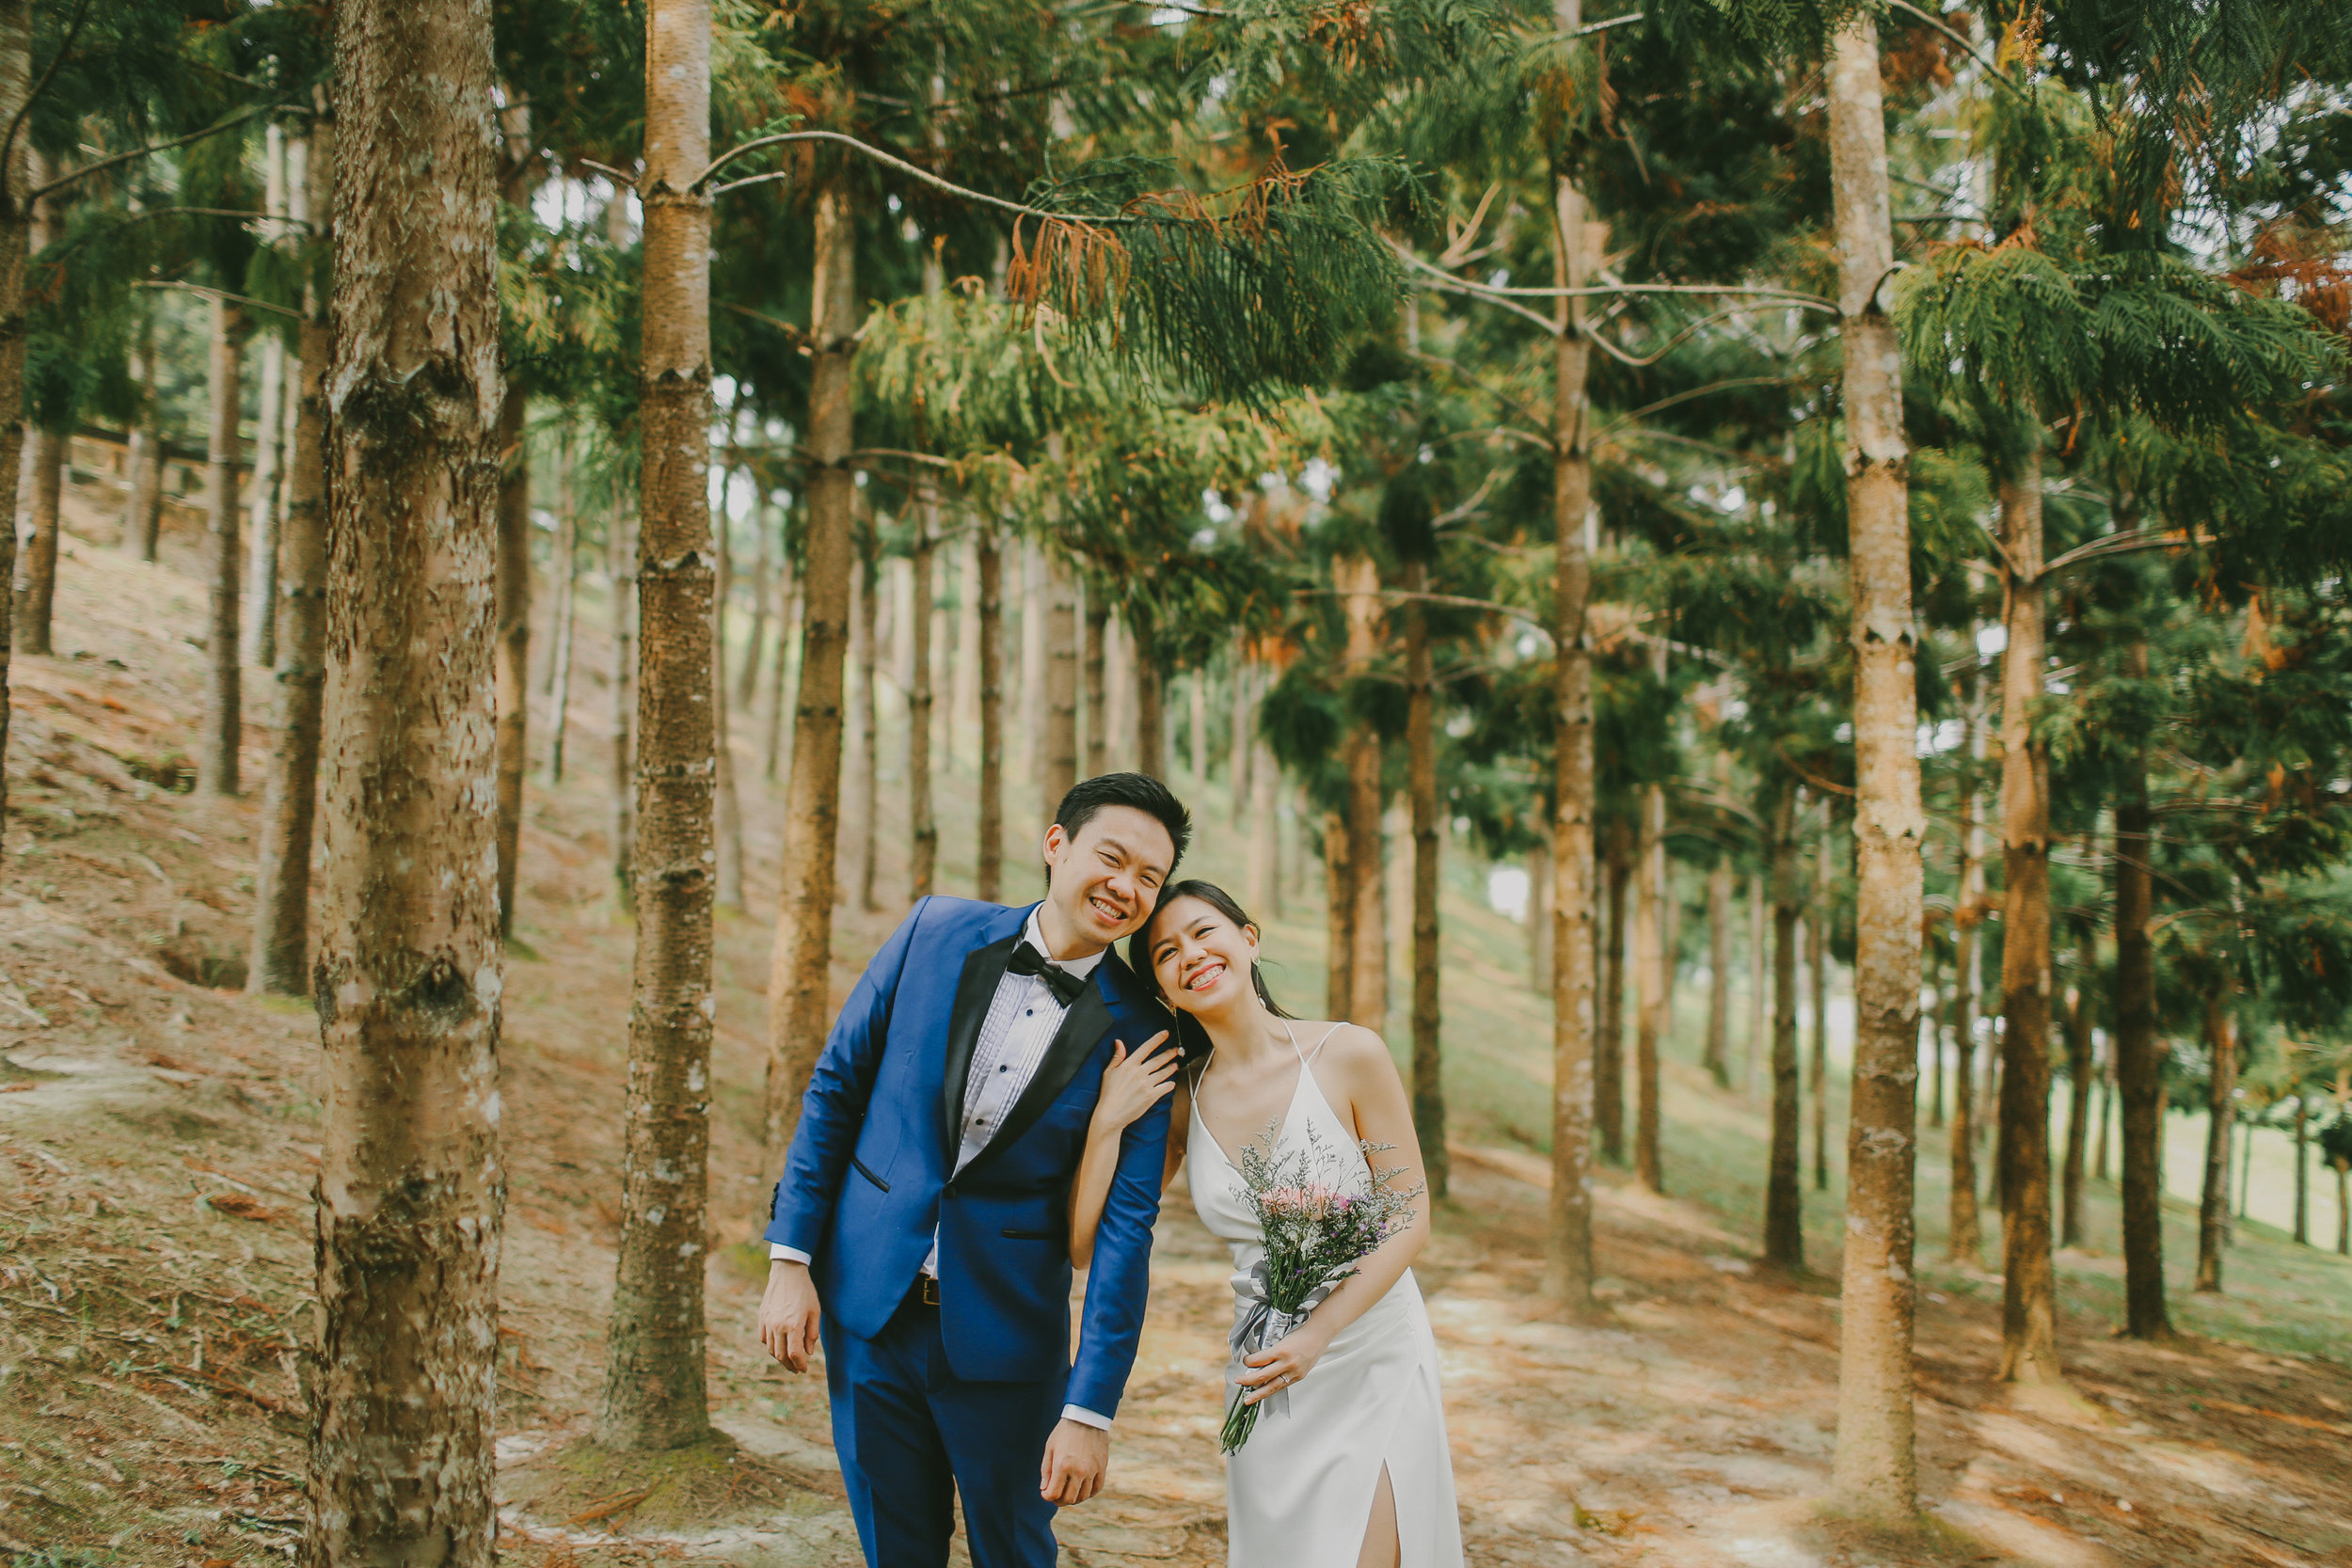 2019-Pre-wedding-numb9r-photography-highres-0744e.jpg